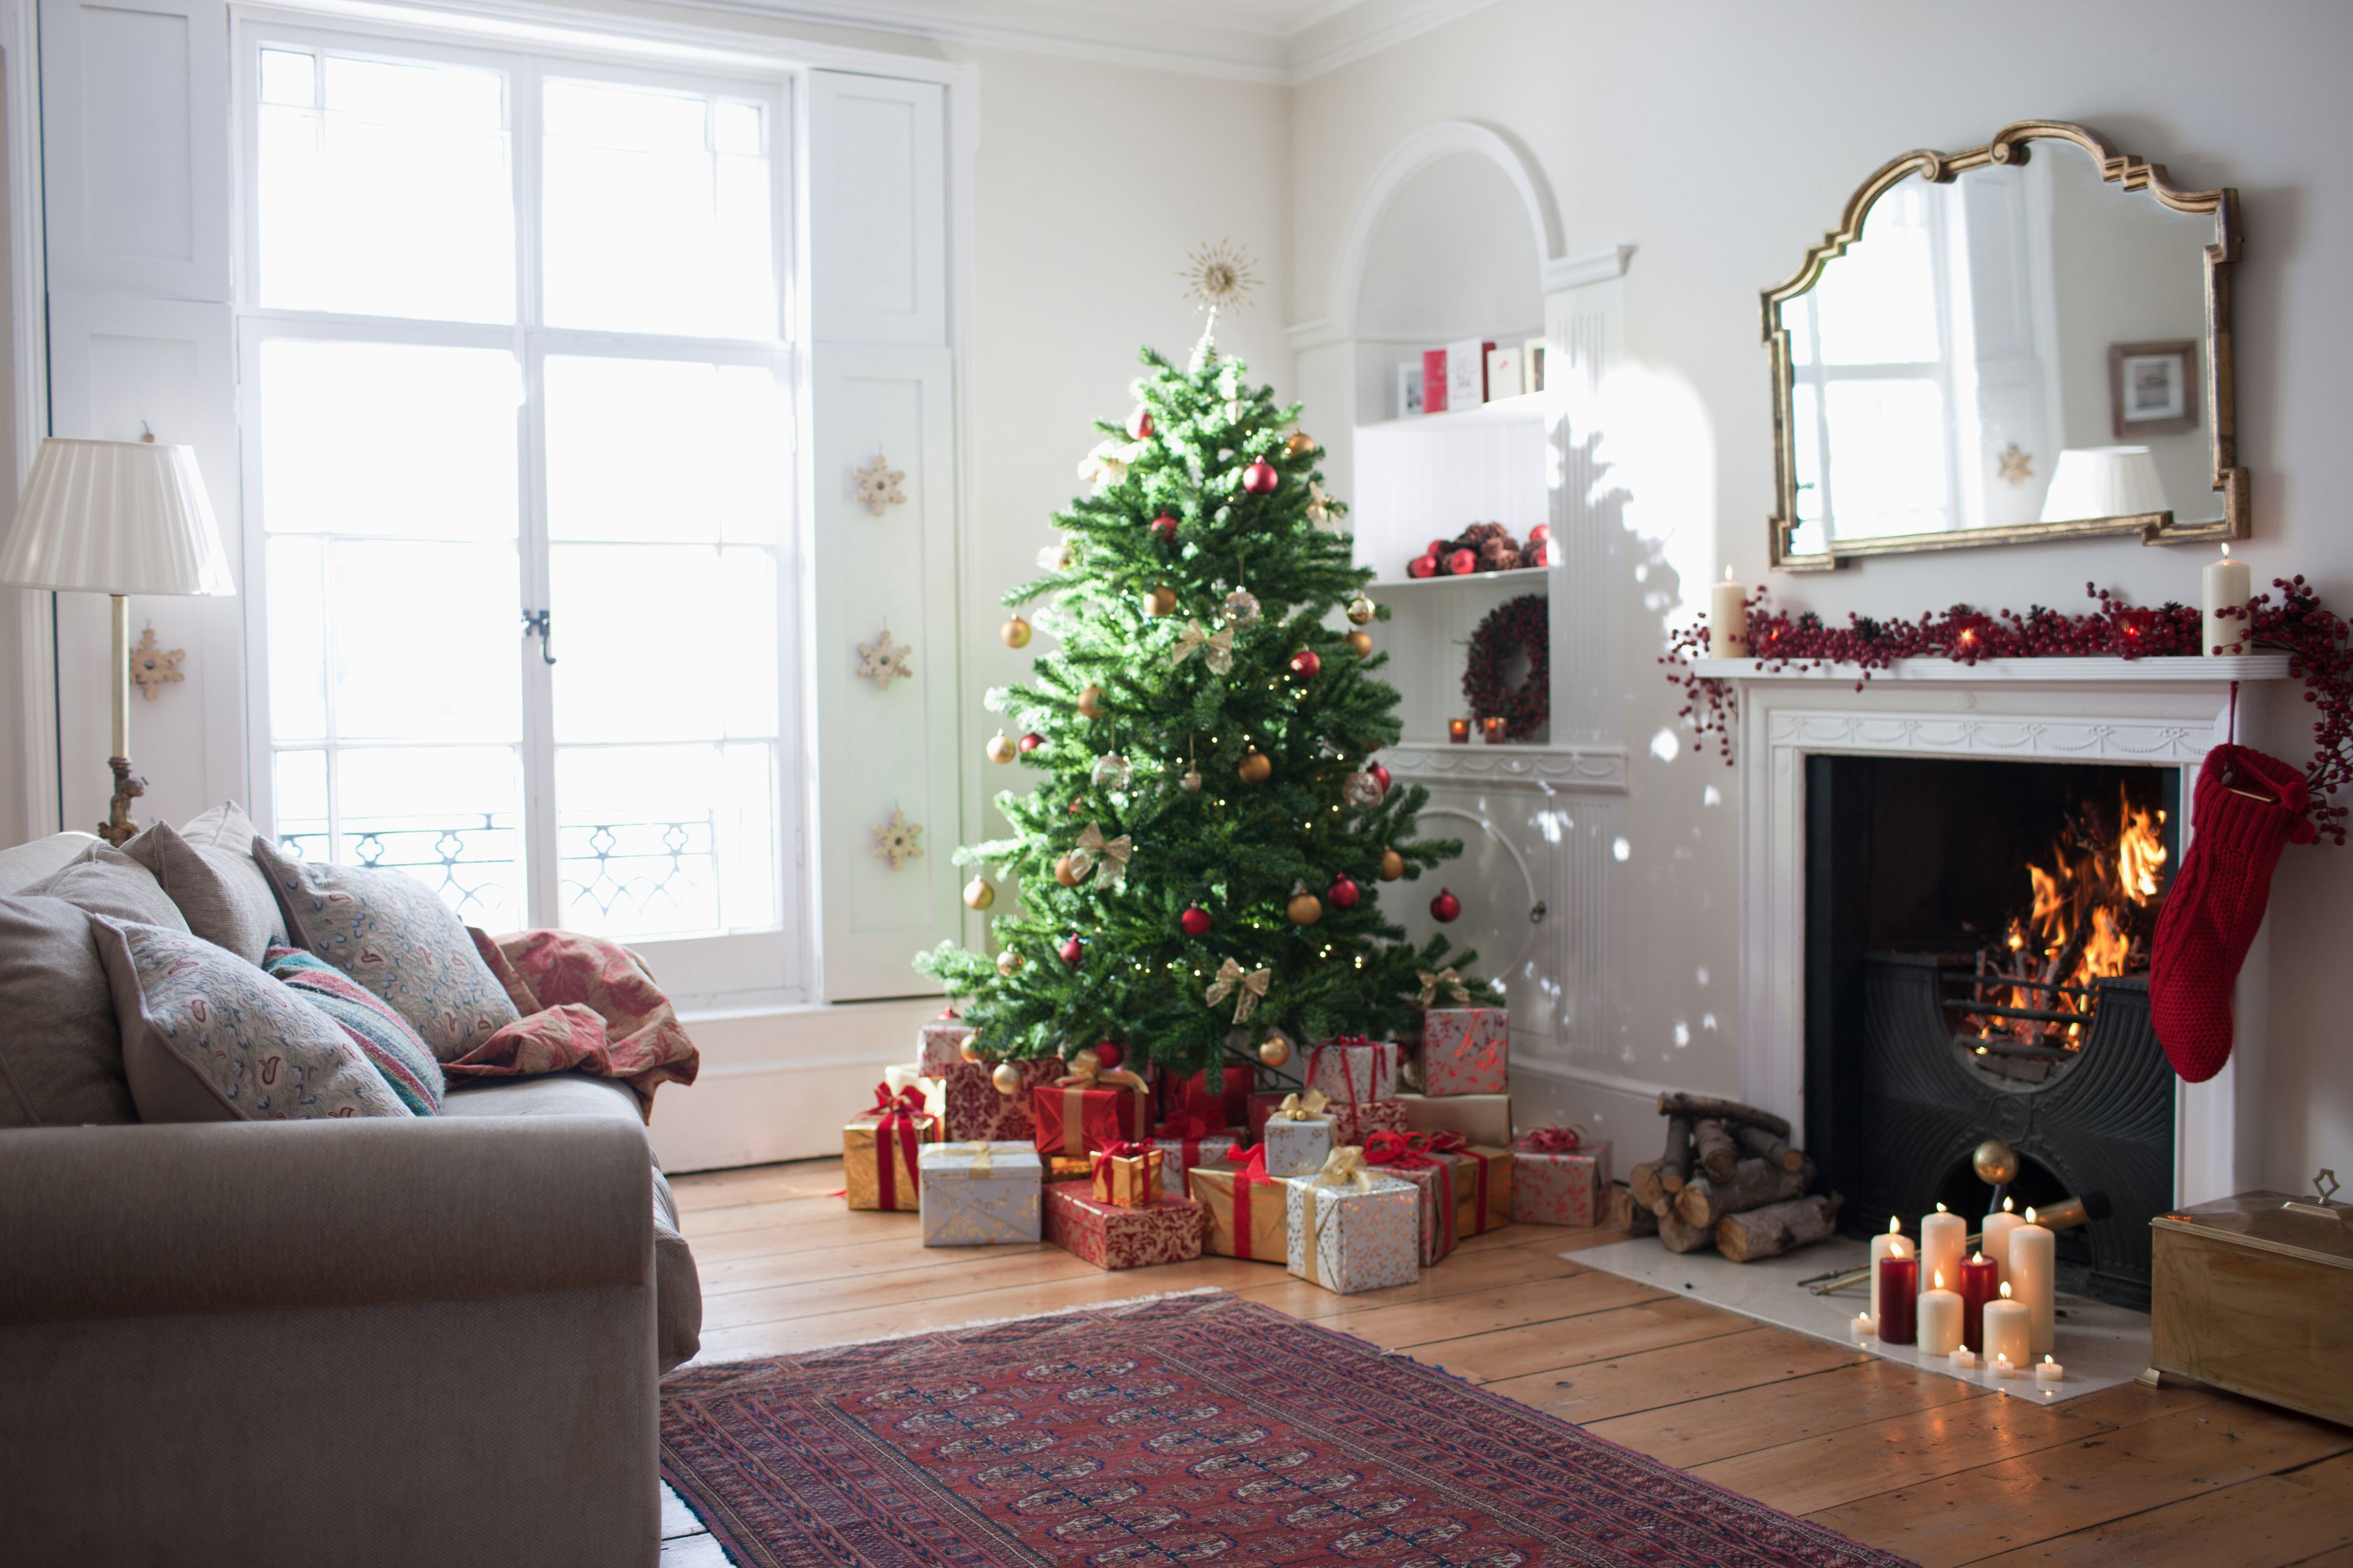 The Best Christmas Tree Stands to Buy 2018 - Top Holiday Tree Stands